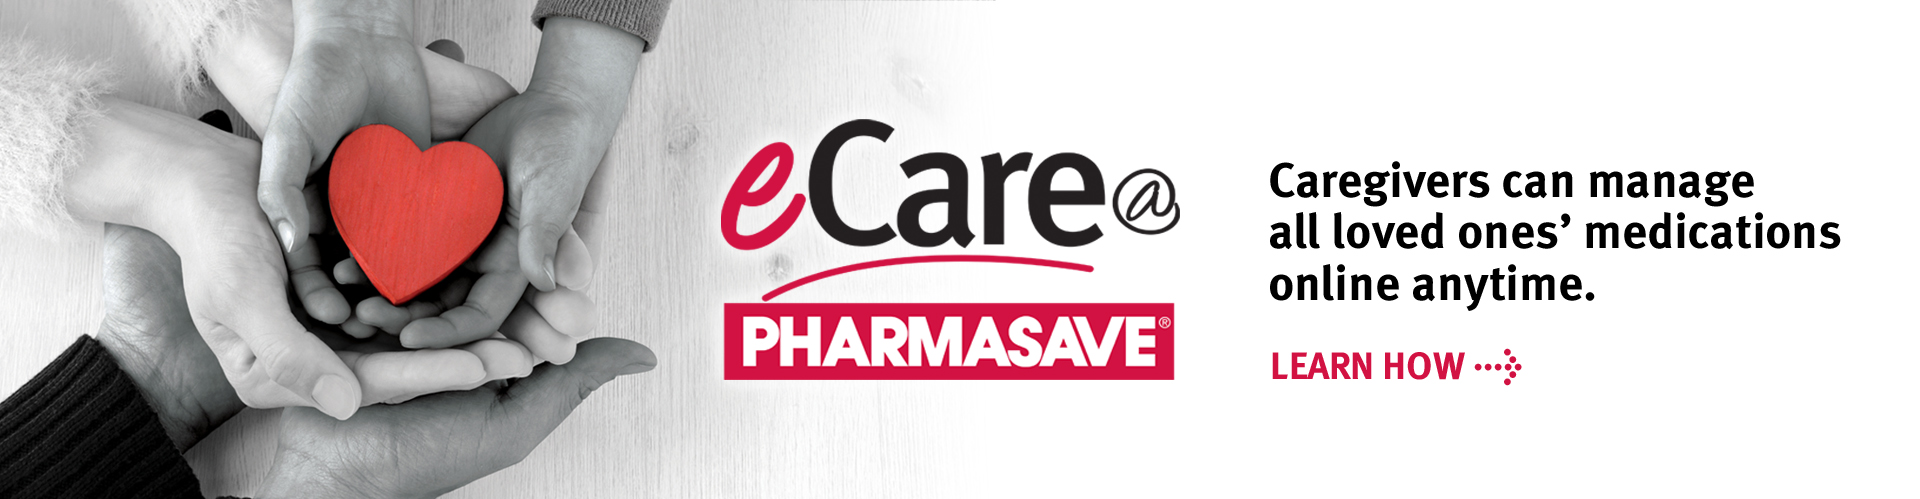 Caregivers can manage all loved ones' medications. Contact your local Pharmasave and ask about the eCare@Pharmasave app.